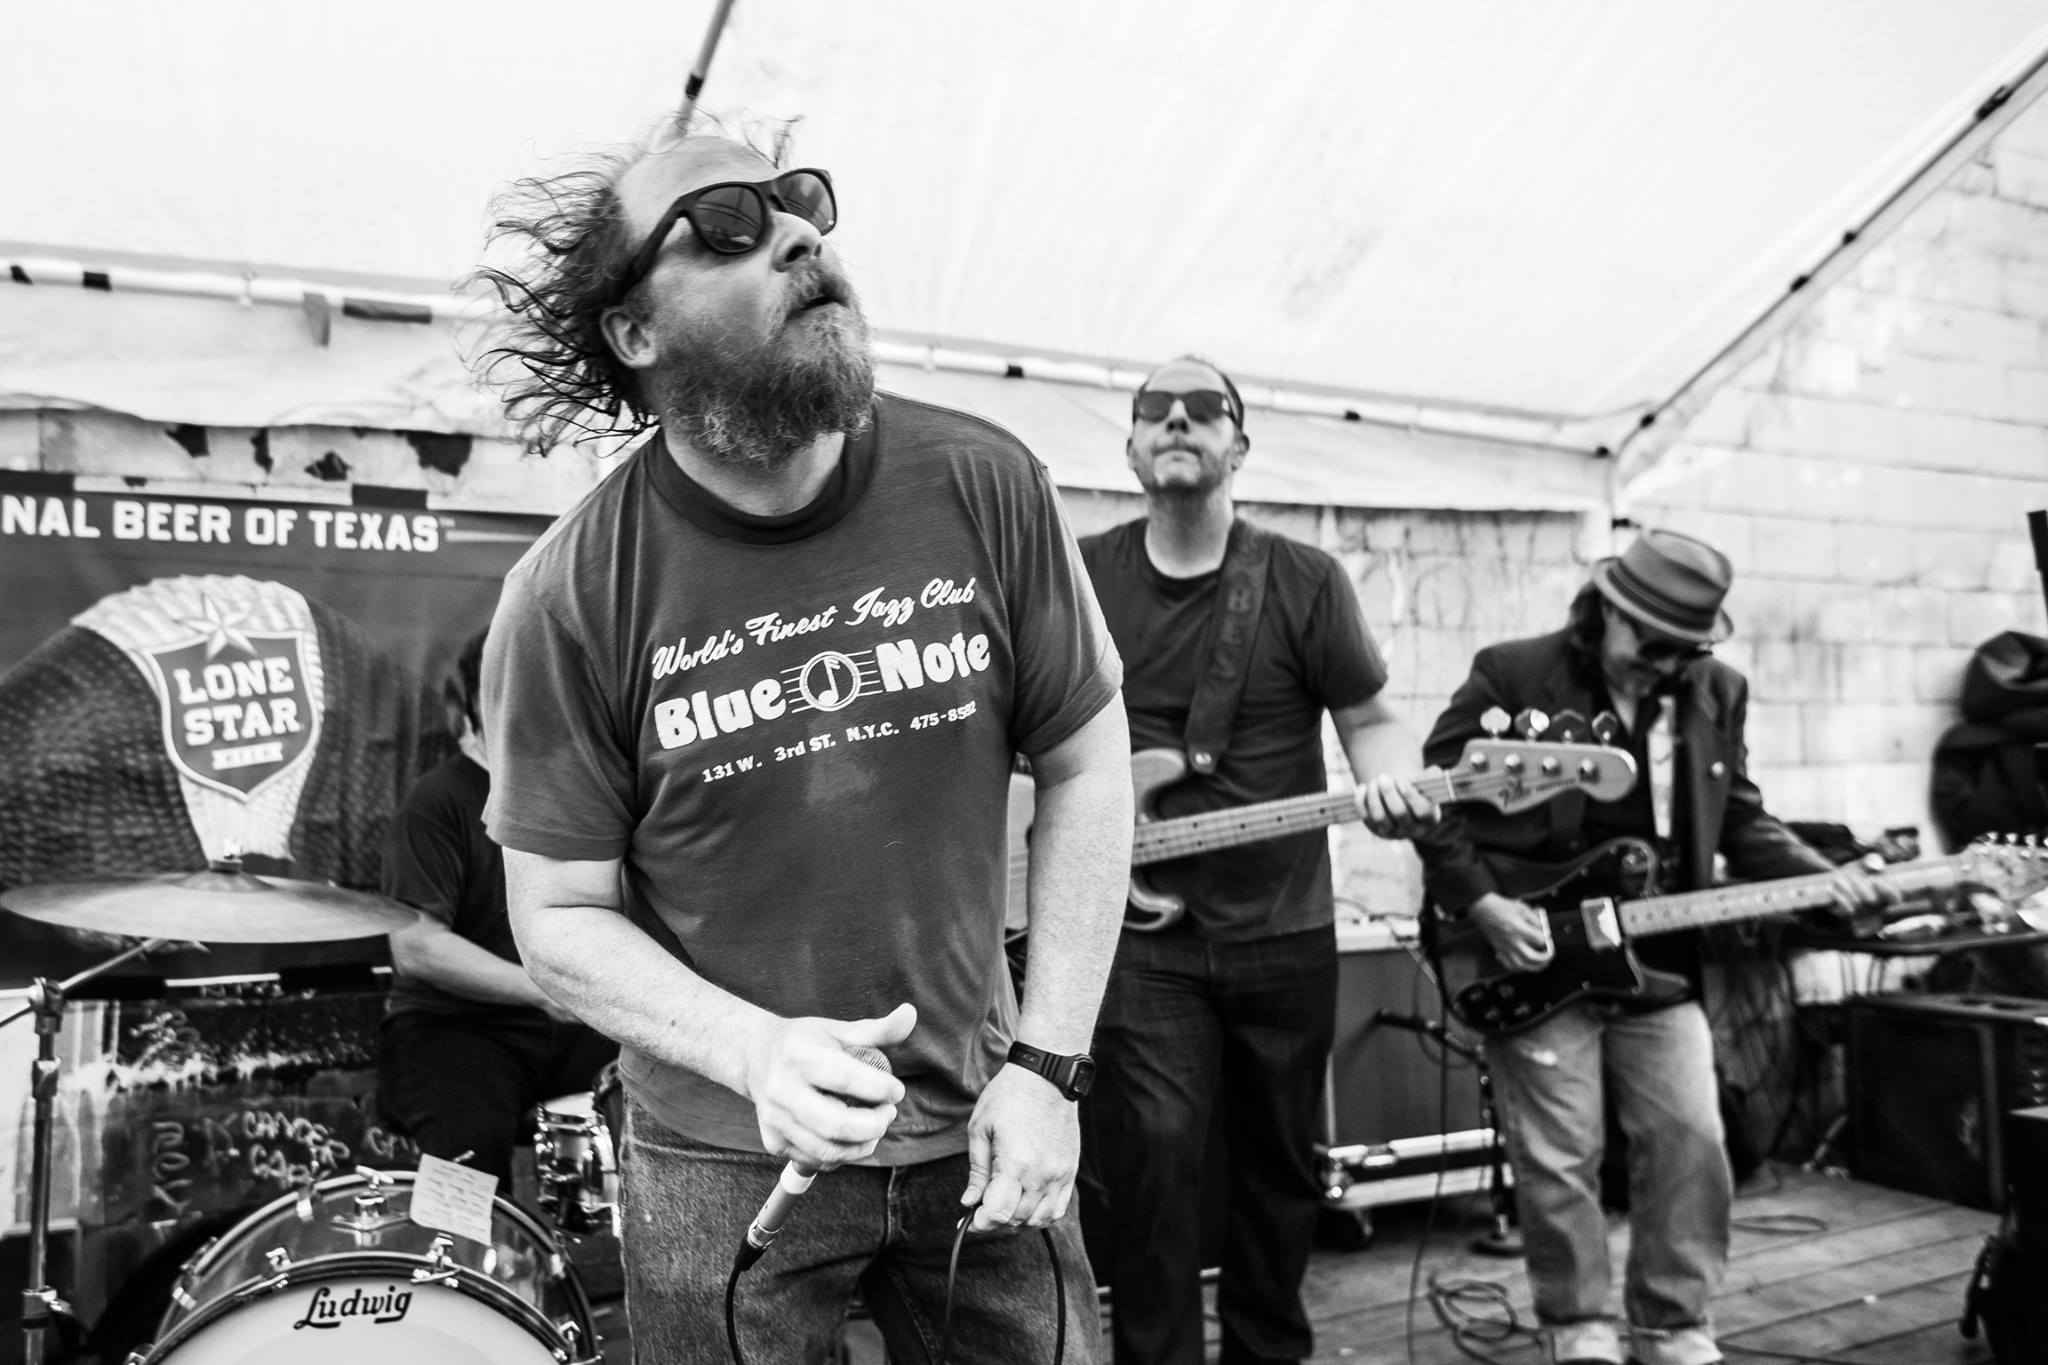 Rock band The Crack Pipes at Chili Dog Fest